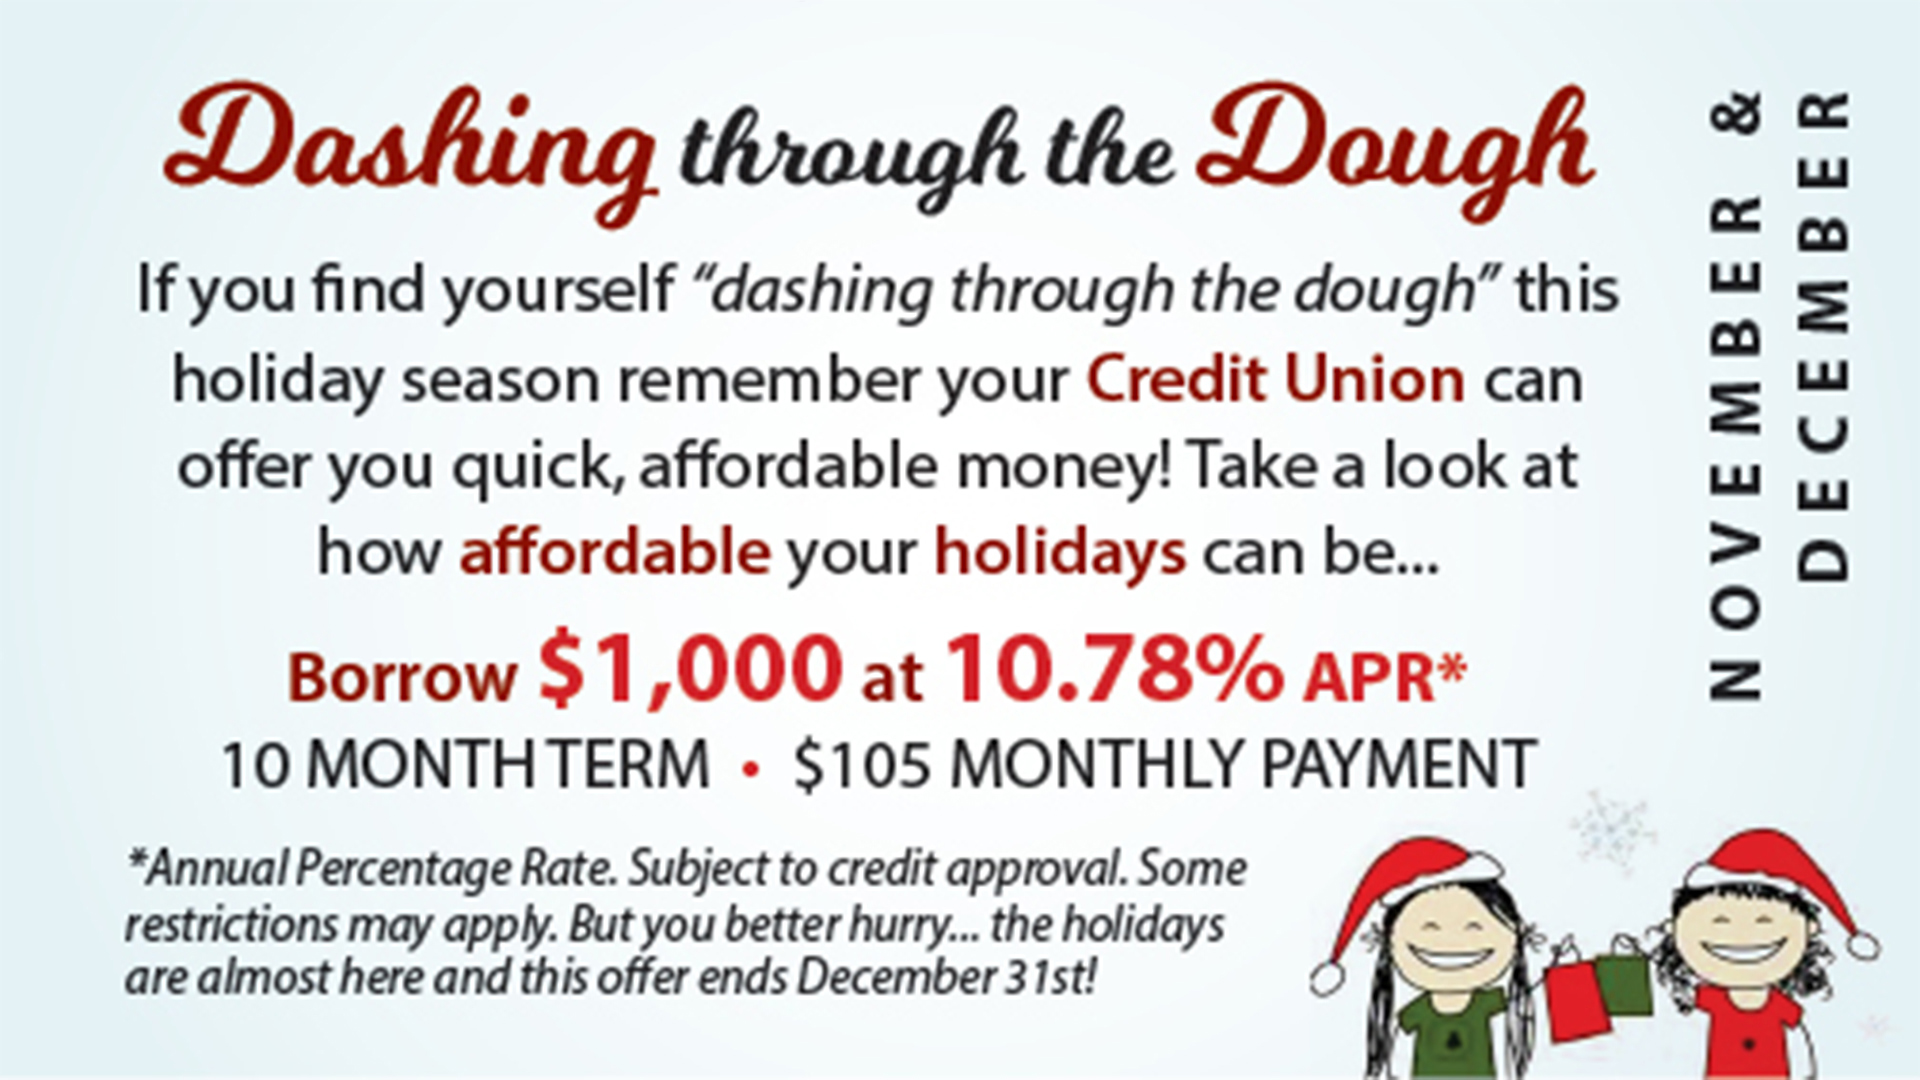 Need a little cash for the holidays? Apply today for our Dashing through the Dough Loan! Subject to credit approval. Some restrictions may apply. Call us today at 928-753-8000 for more information.